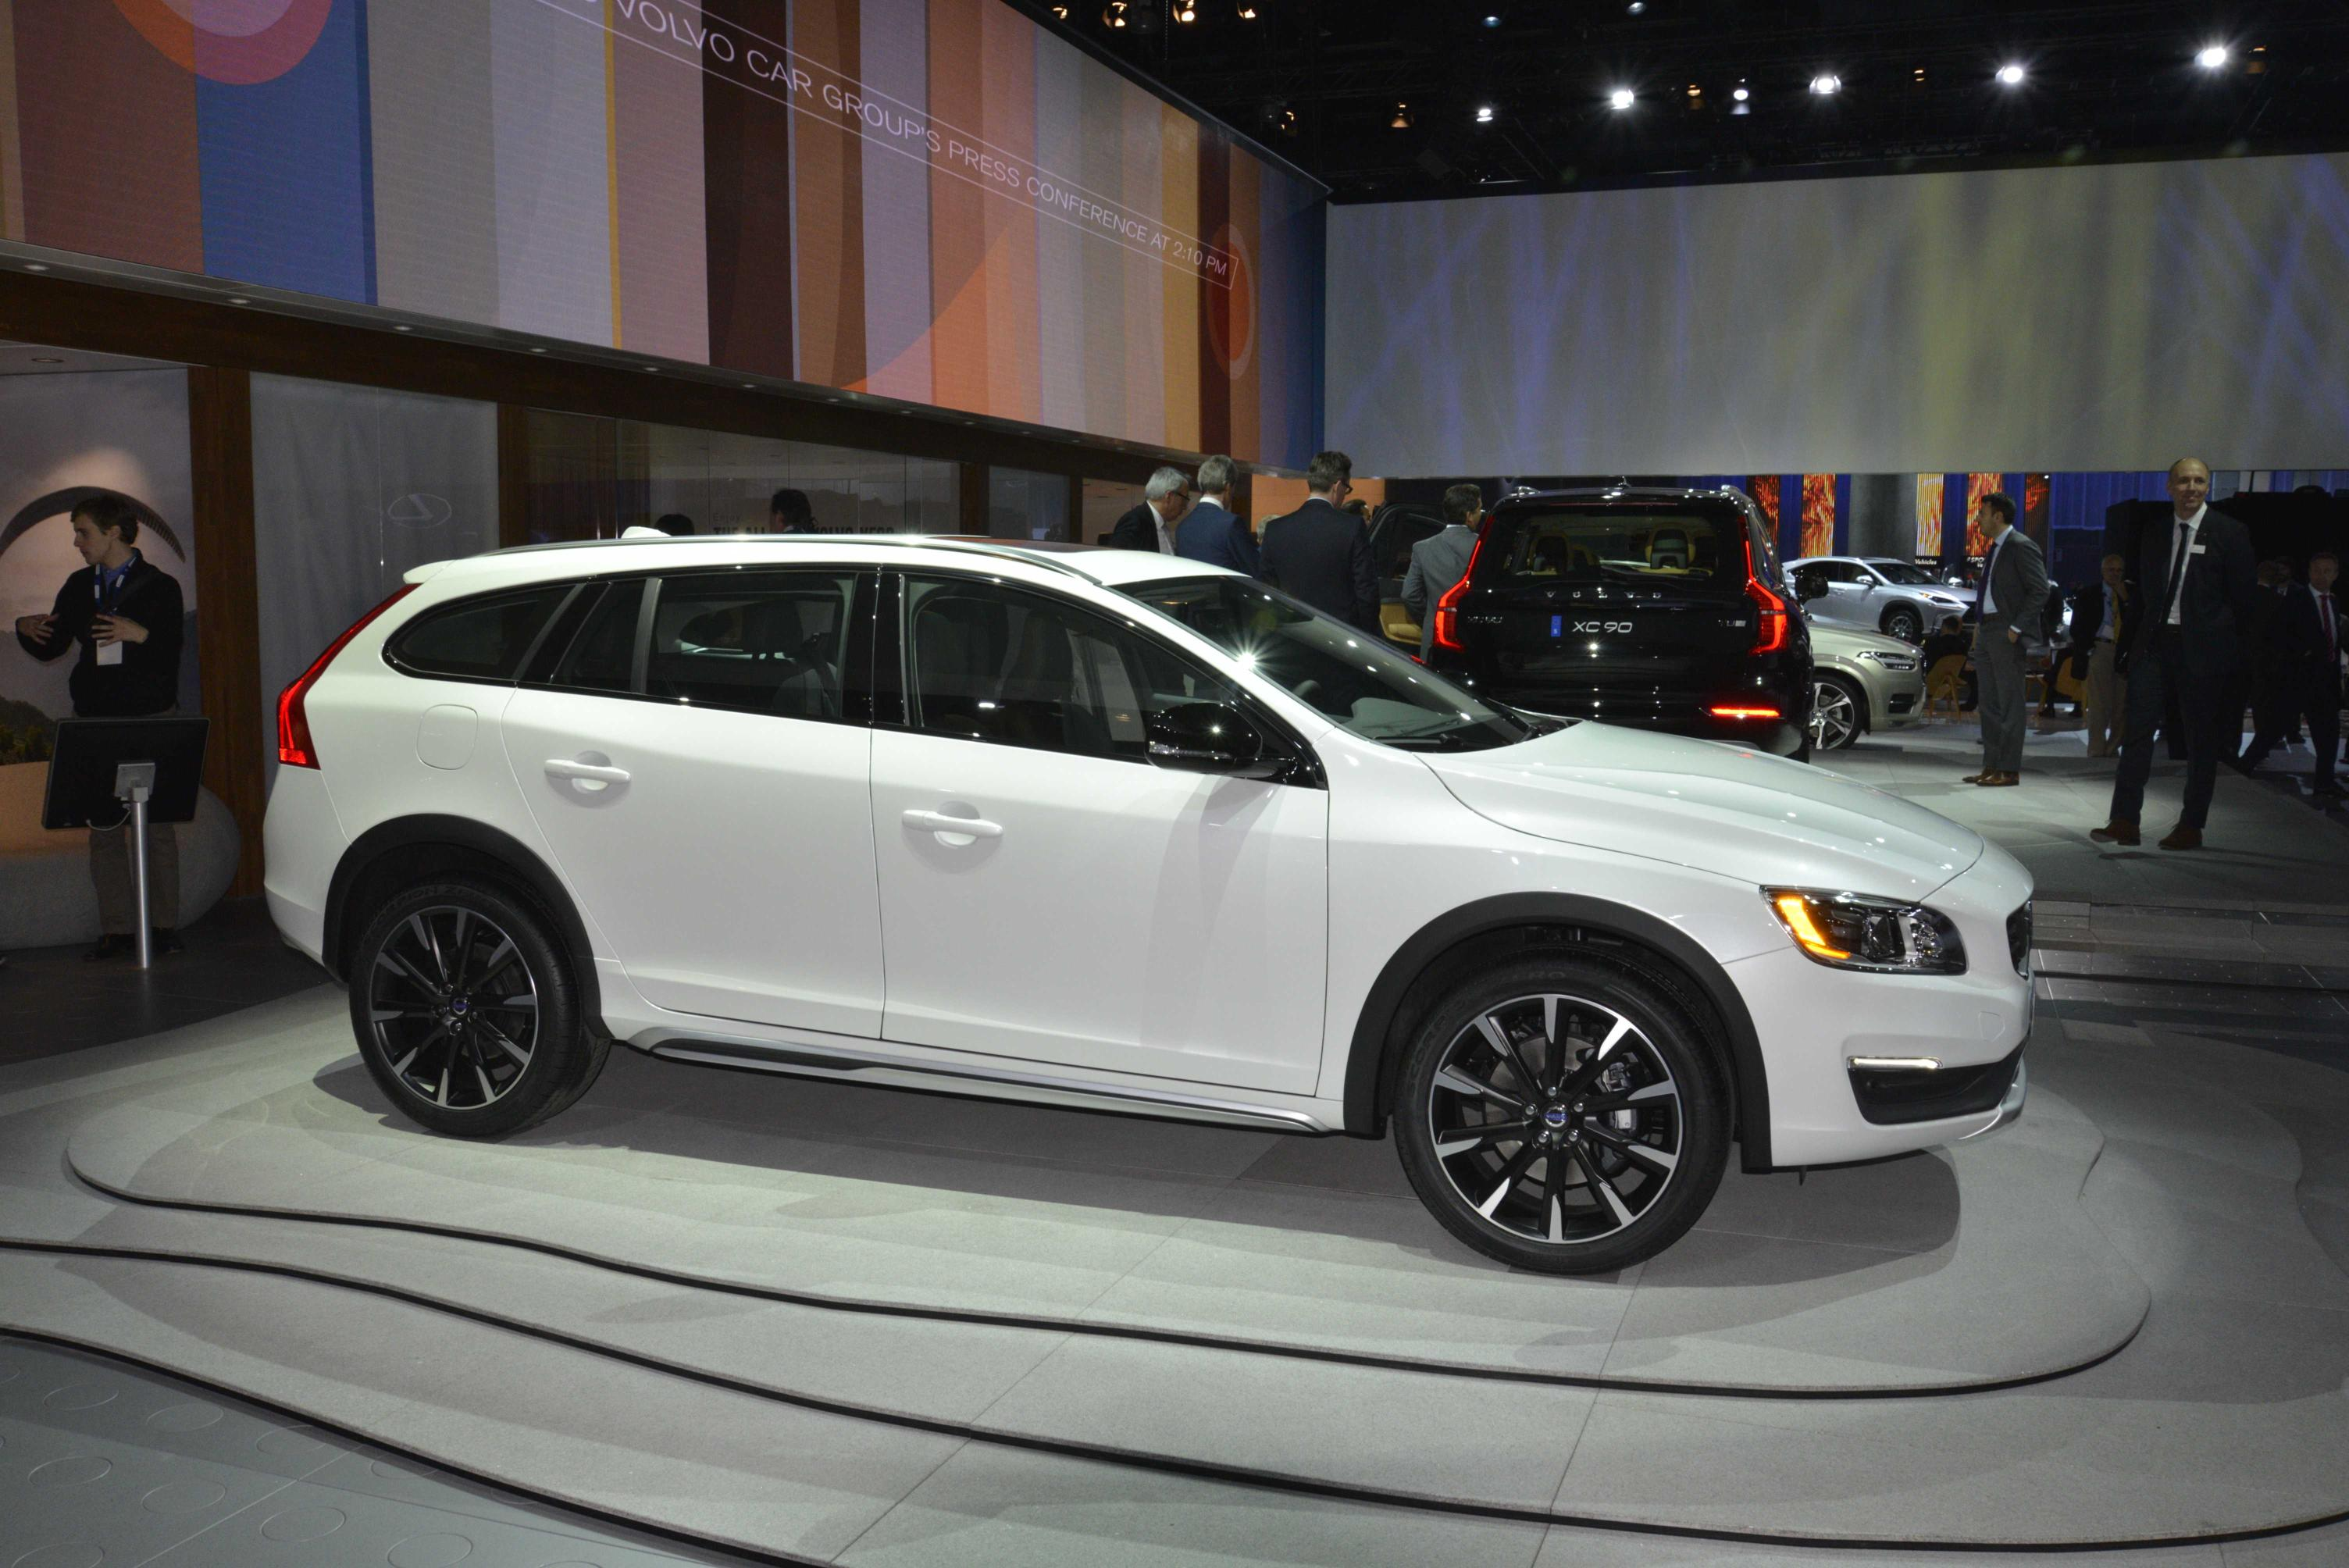 volvo v60 cross country makes world debut at 2014 la show live photos autoevolution. Black Bedroom Furniture Sets. Home Design Ideas